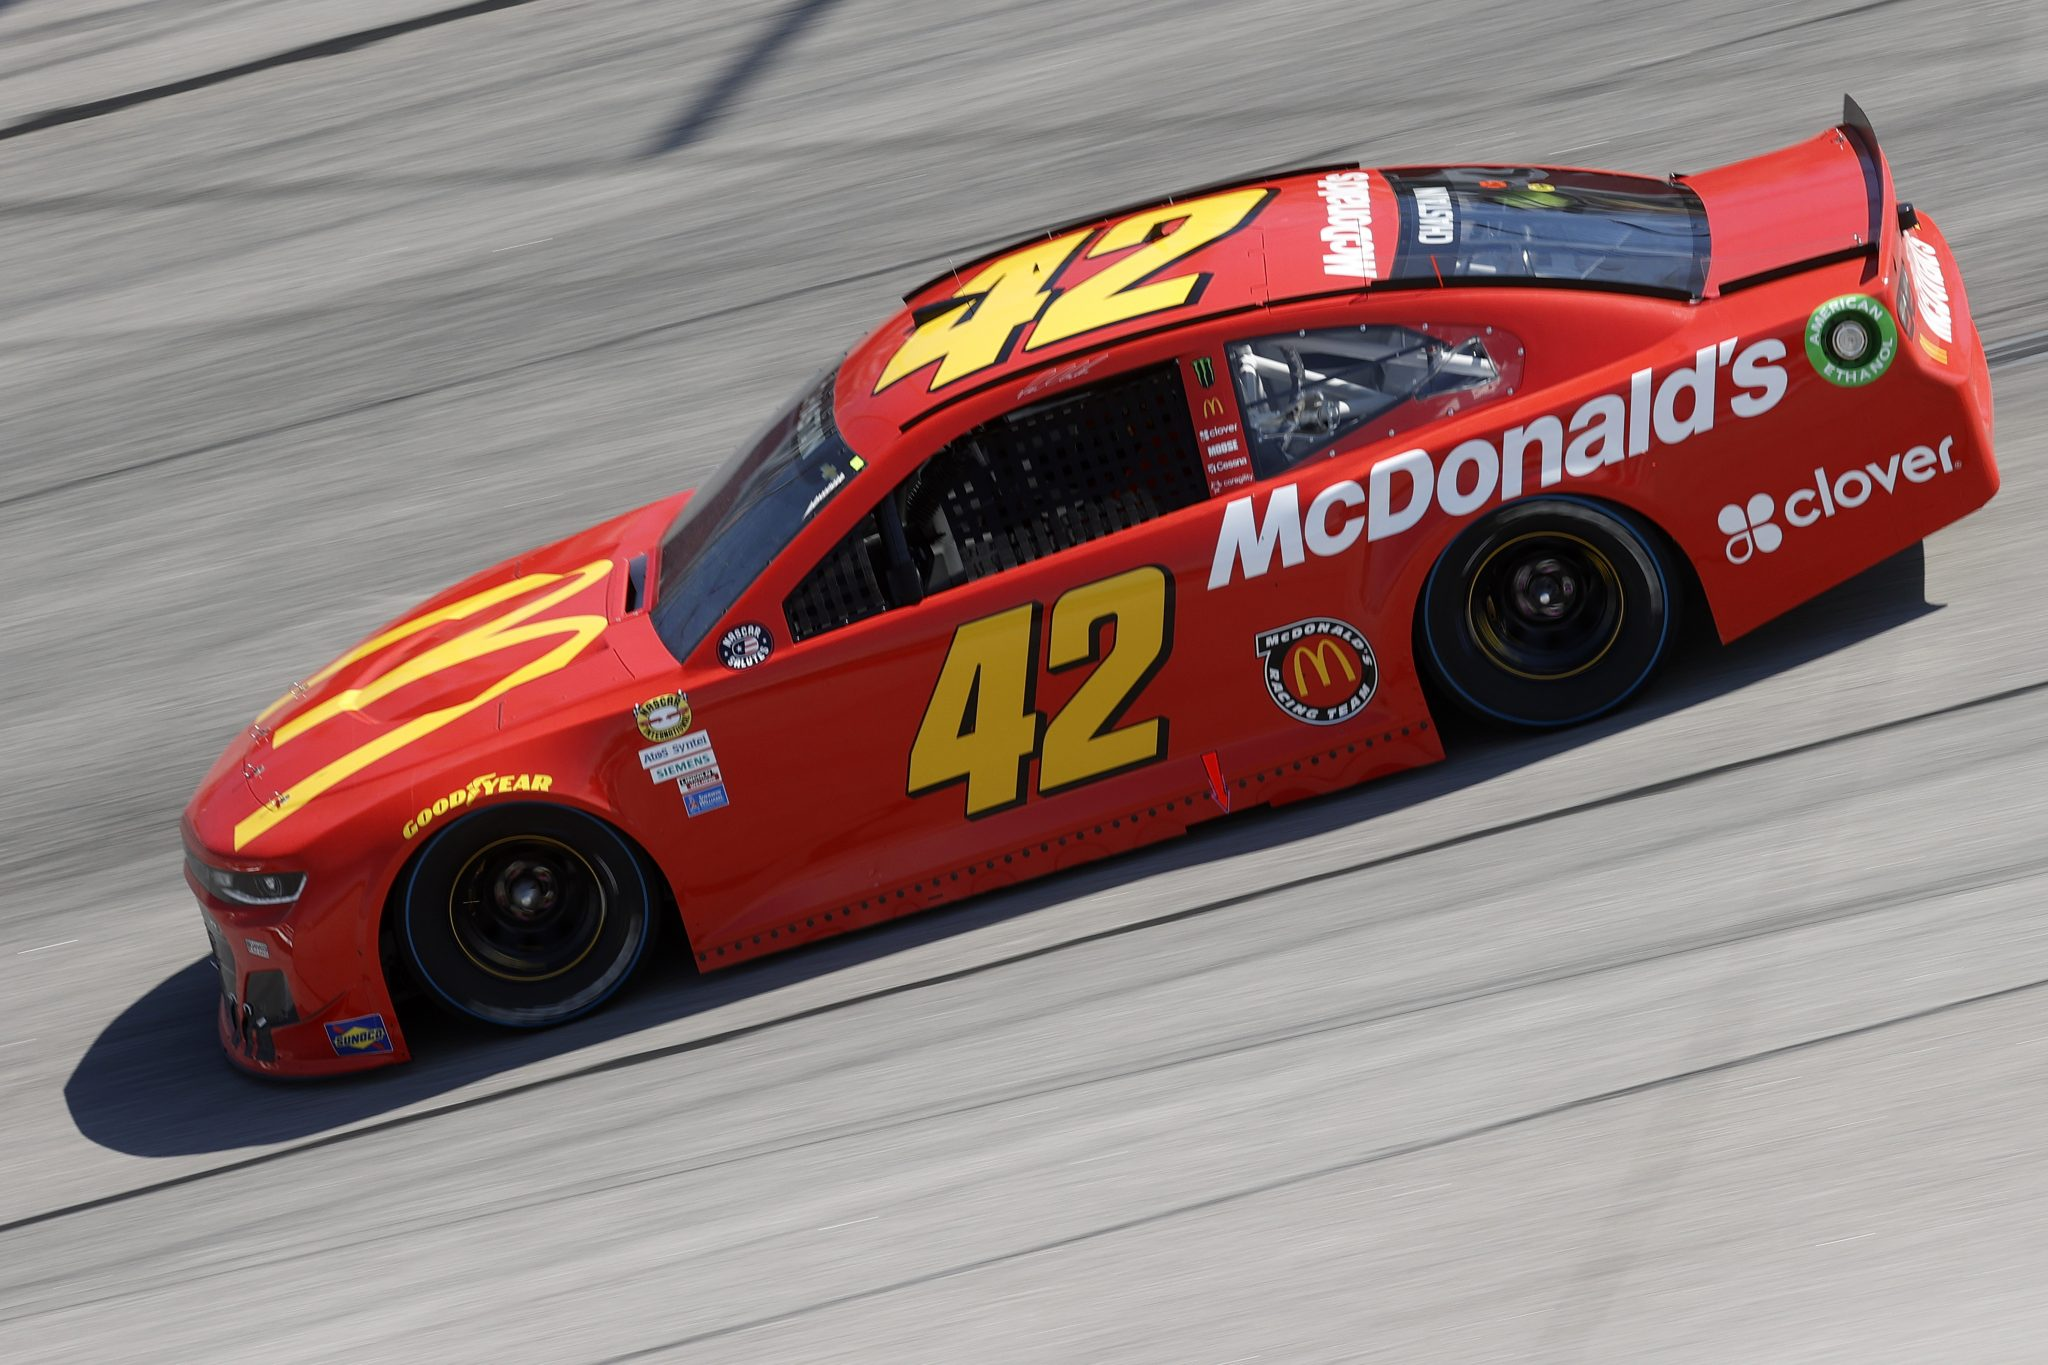 DARLINGTON, SOUTH CAROLINA - MAY 09: Ross Chastain, driver of the #42 McDonald's Chevrolet, drives during the NASCAR Cup Series Goodyear 400 at Darlington Raceway on May 09, 2021 in Darlington, South Carolina. (Photo by Chris Graythen/Getty Images) | Getty Images